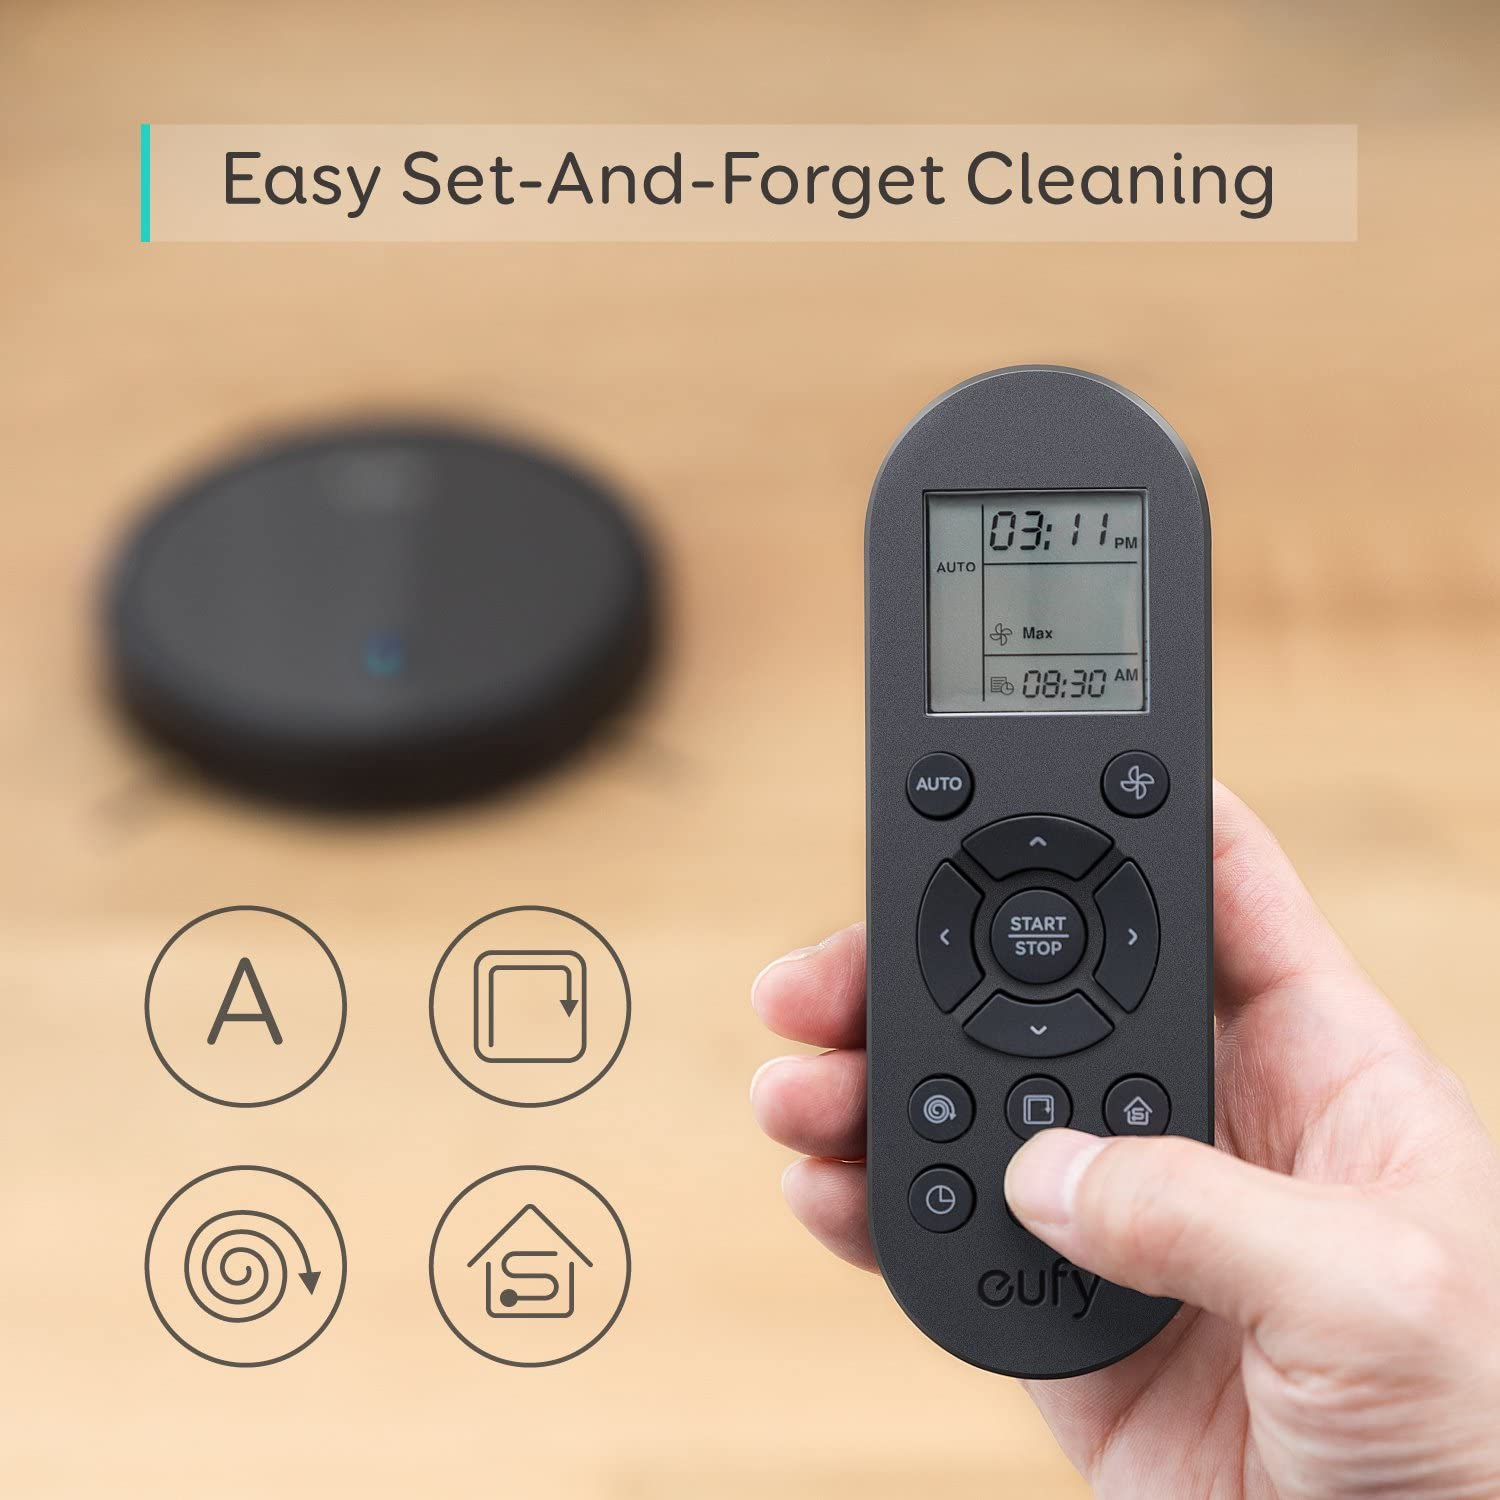 eufy by Anker, BoostIQ RoboVac 11S (Slim), Robot Vacuum Cleaner, Super-Thin, 1300Pa Strong Suction, Quiet, Self-Charging Robotic Vacuum Cleaner, Cleans Hard Floors to Medium-Pile Carpets -